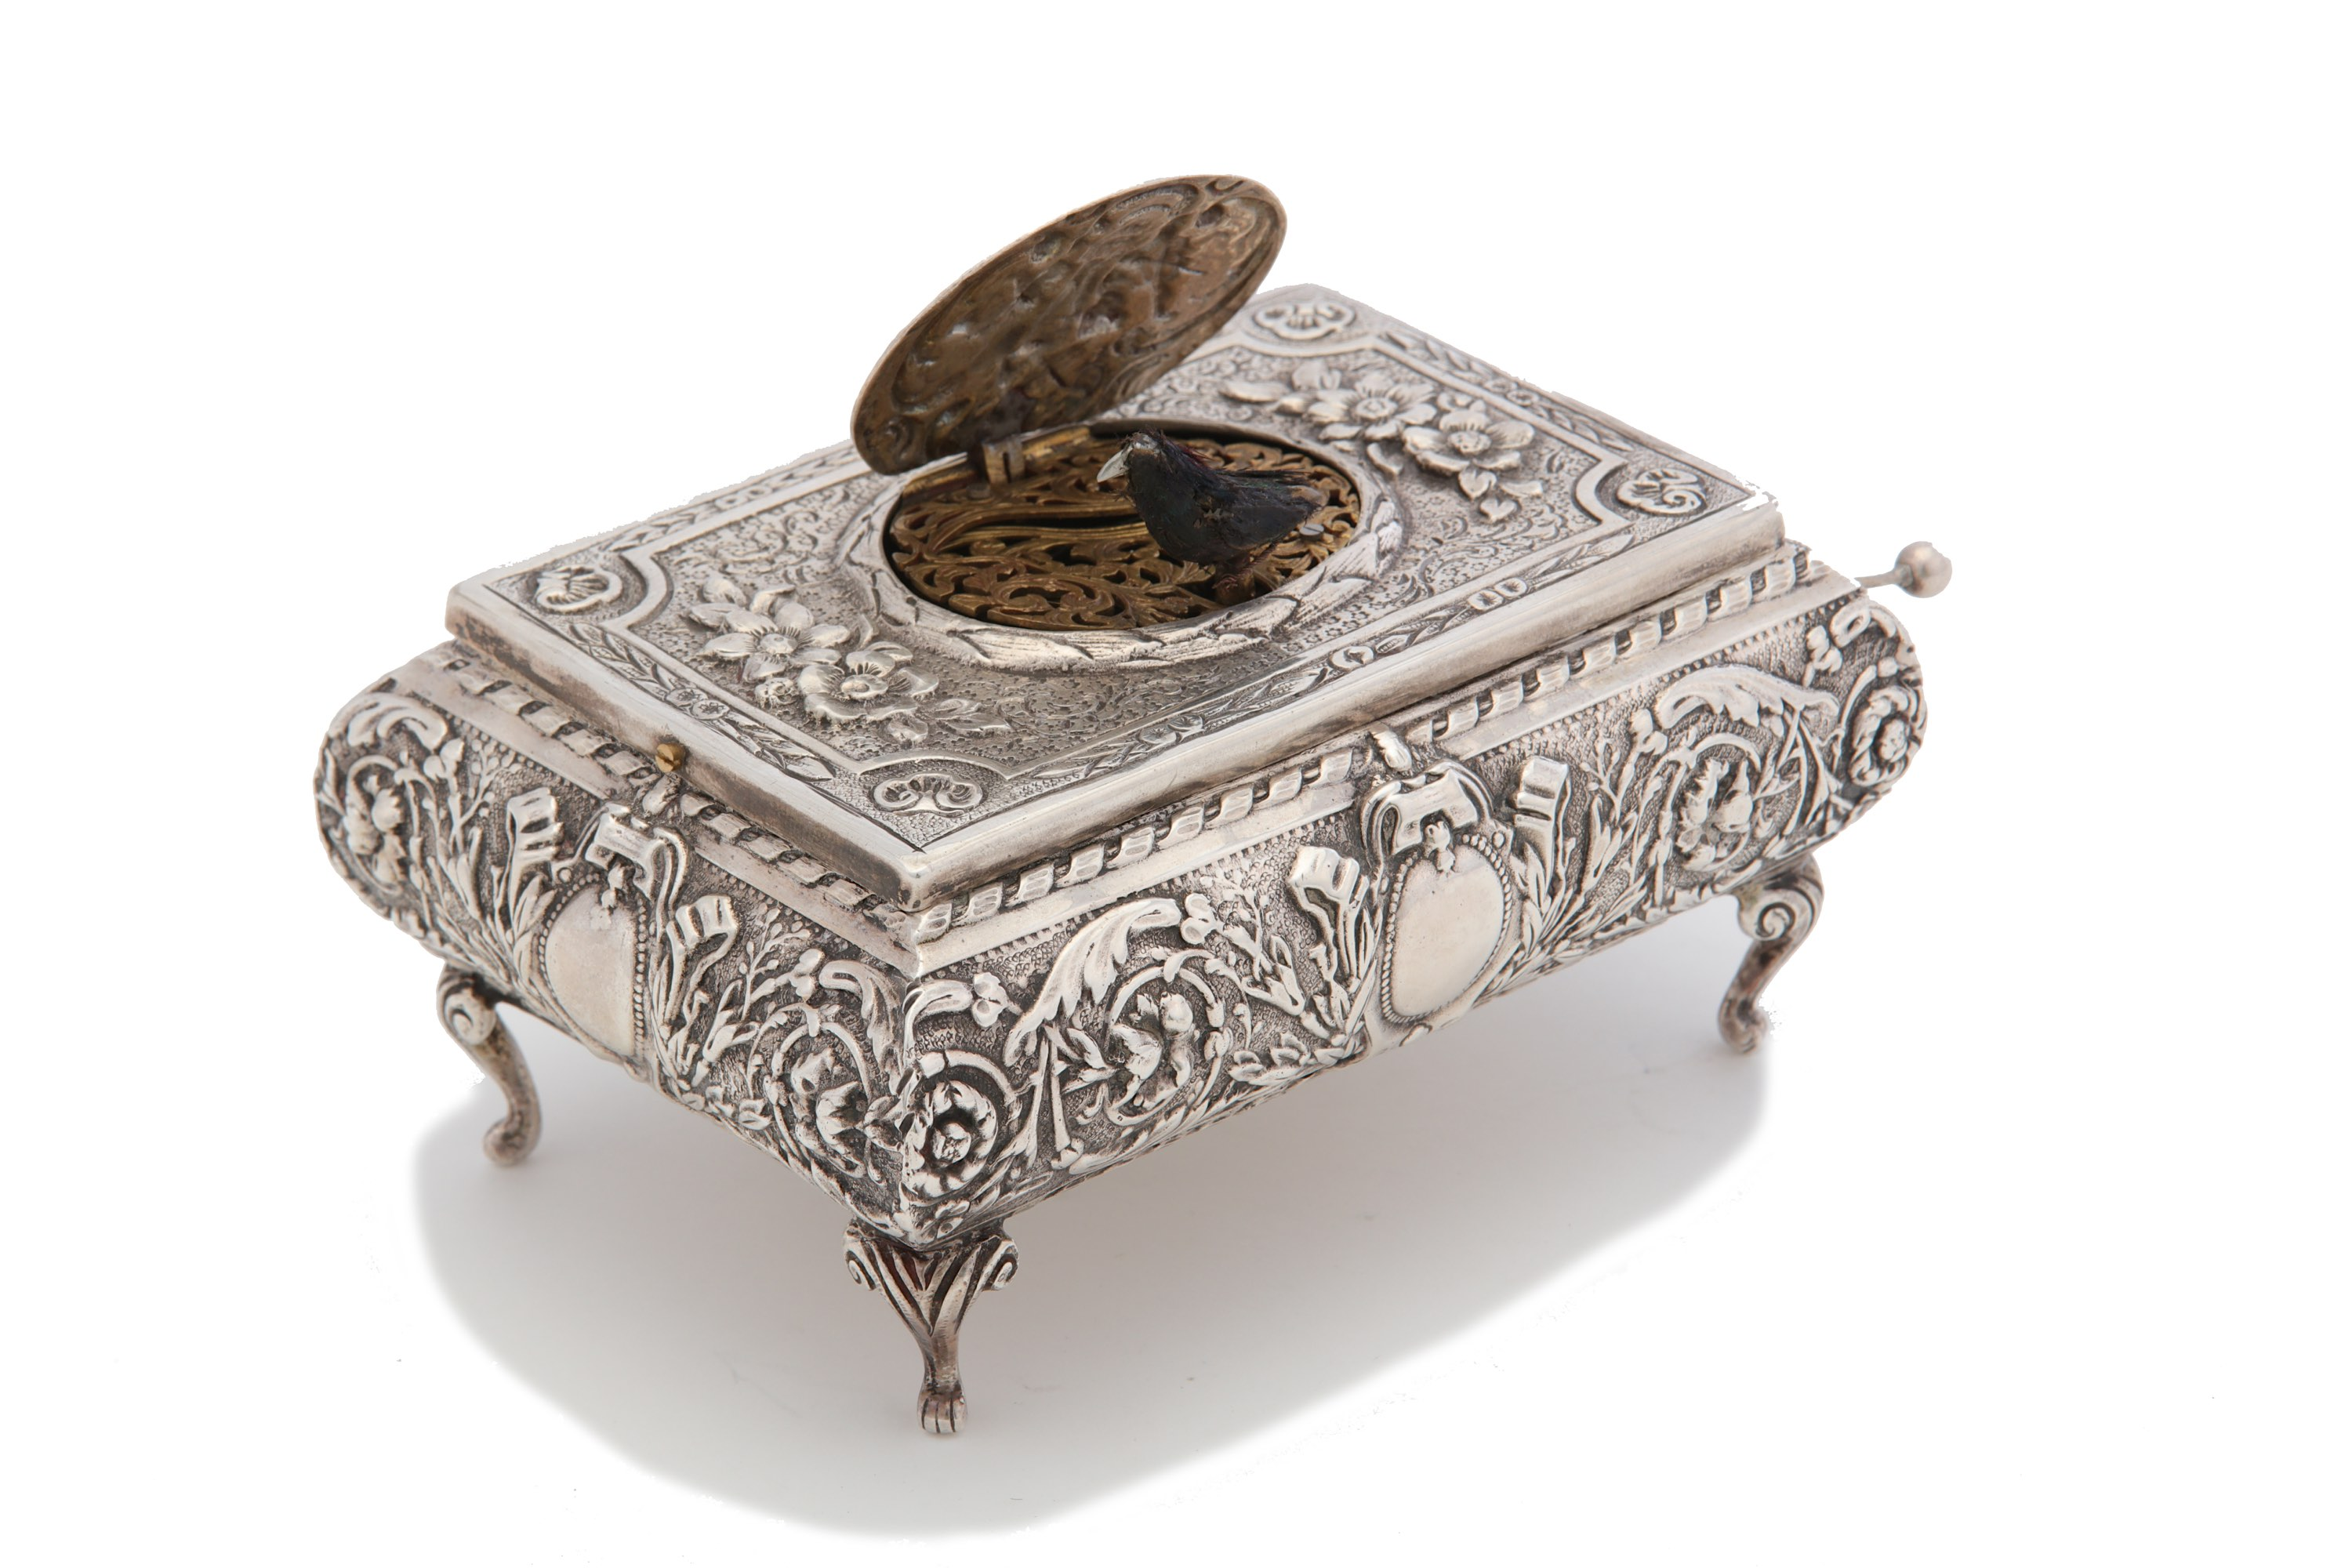 Lot 28 - An early 20th century sterling silver singing bird box, by Karl Griesbaum circa 1920